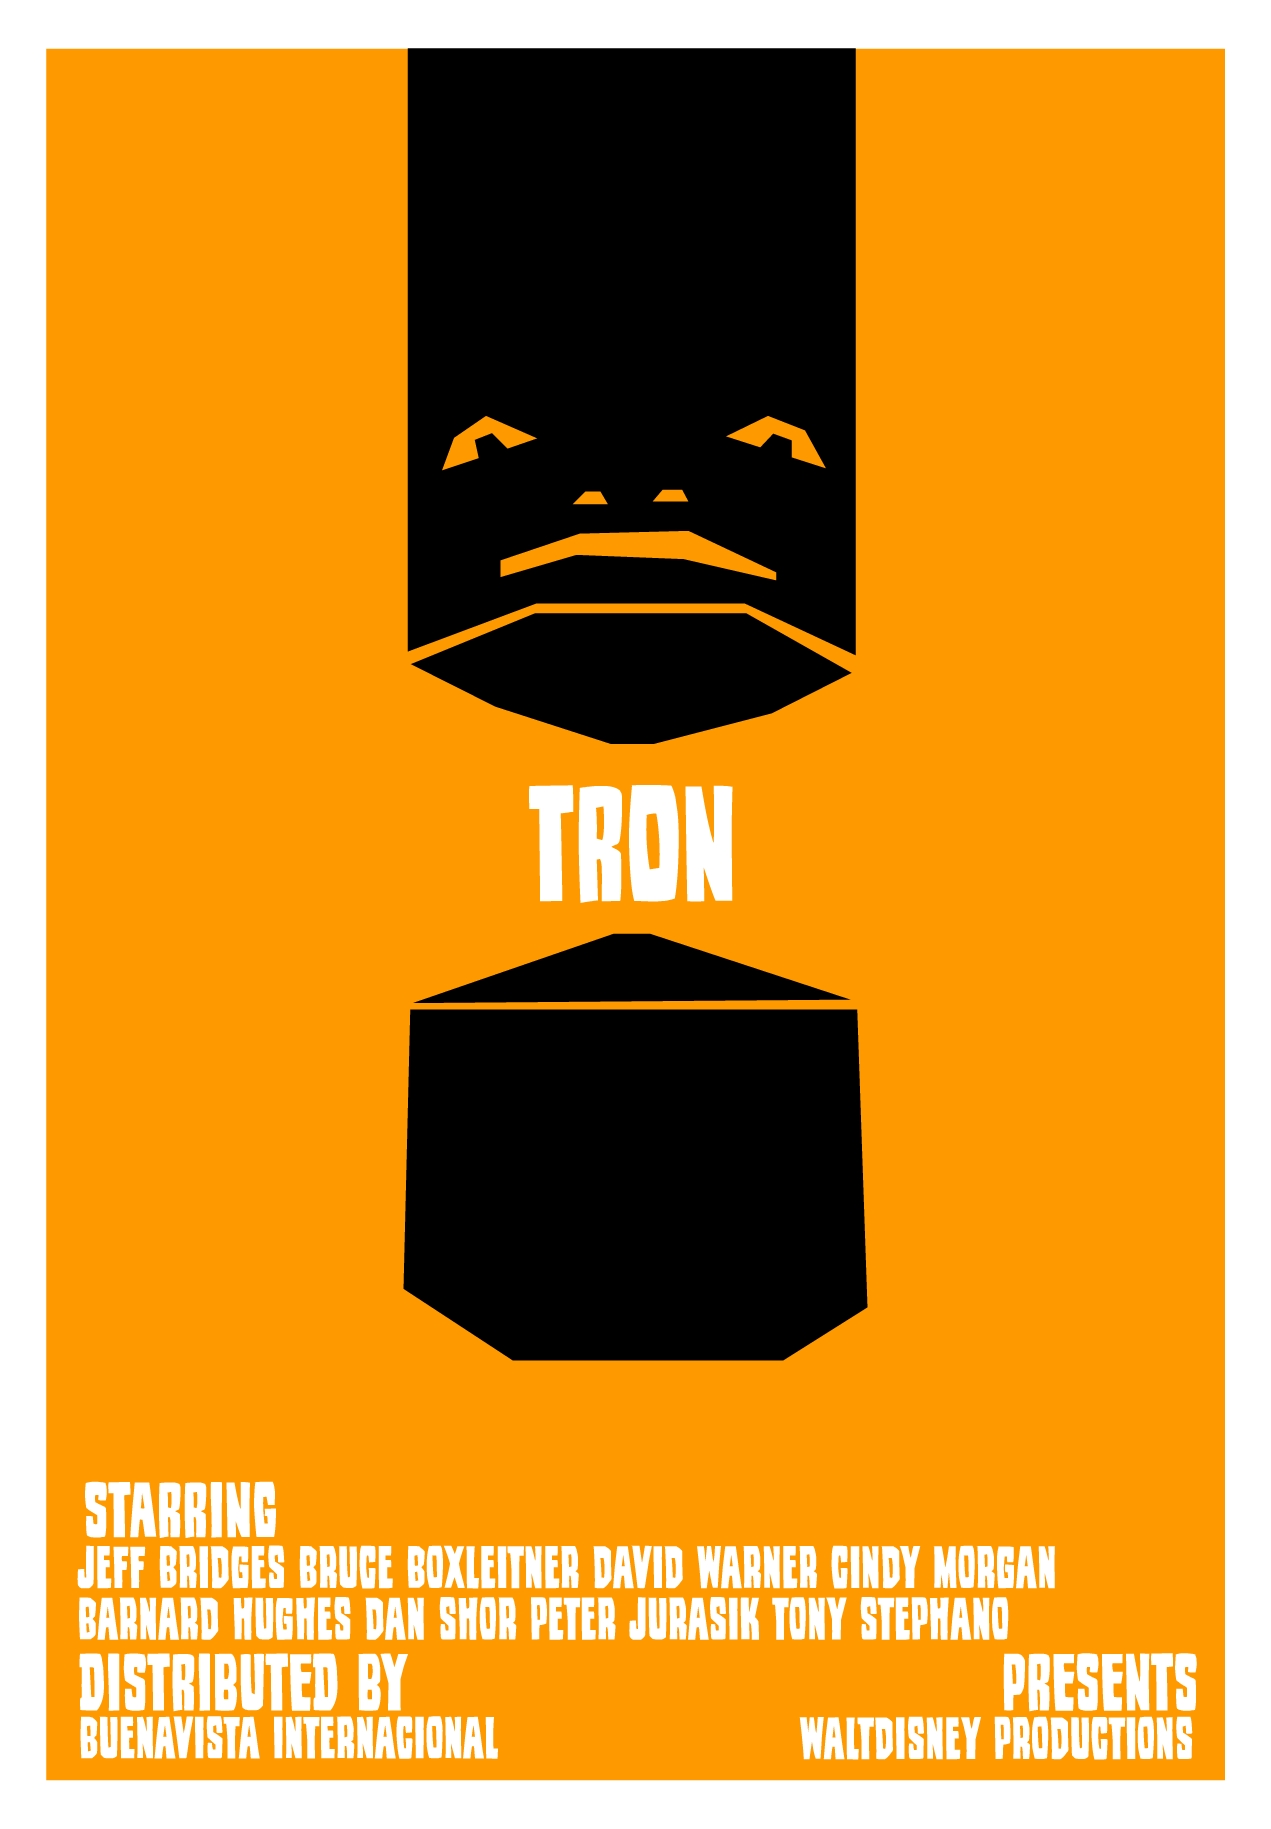 tron_posters_2020_6